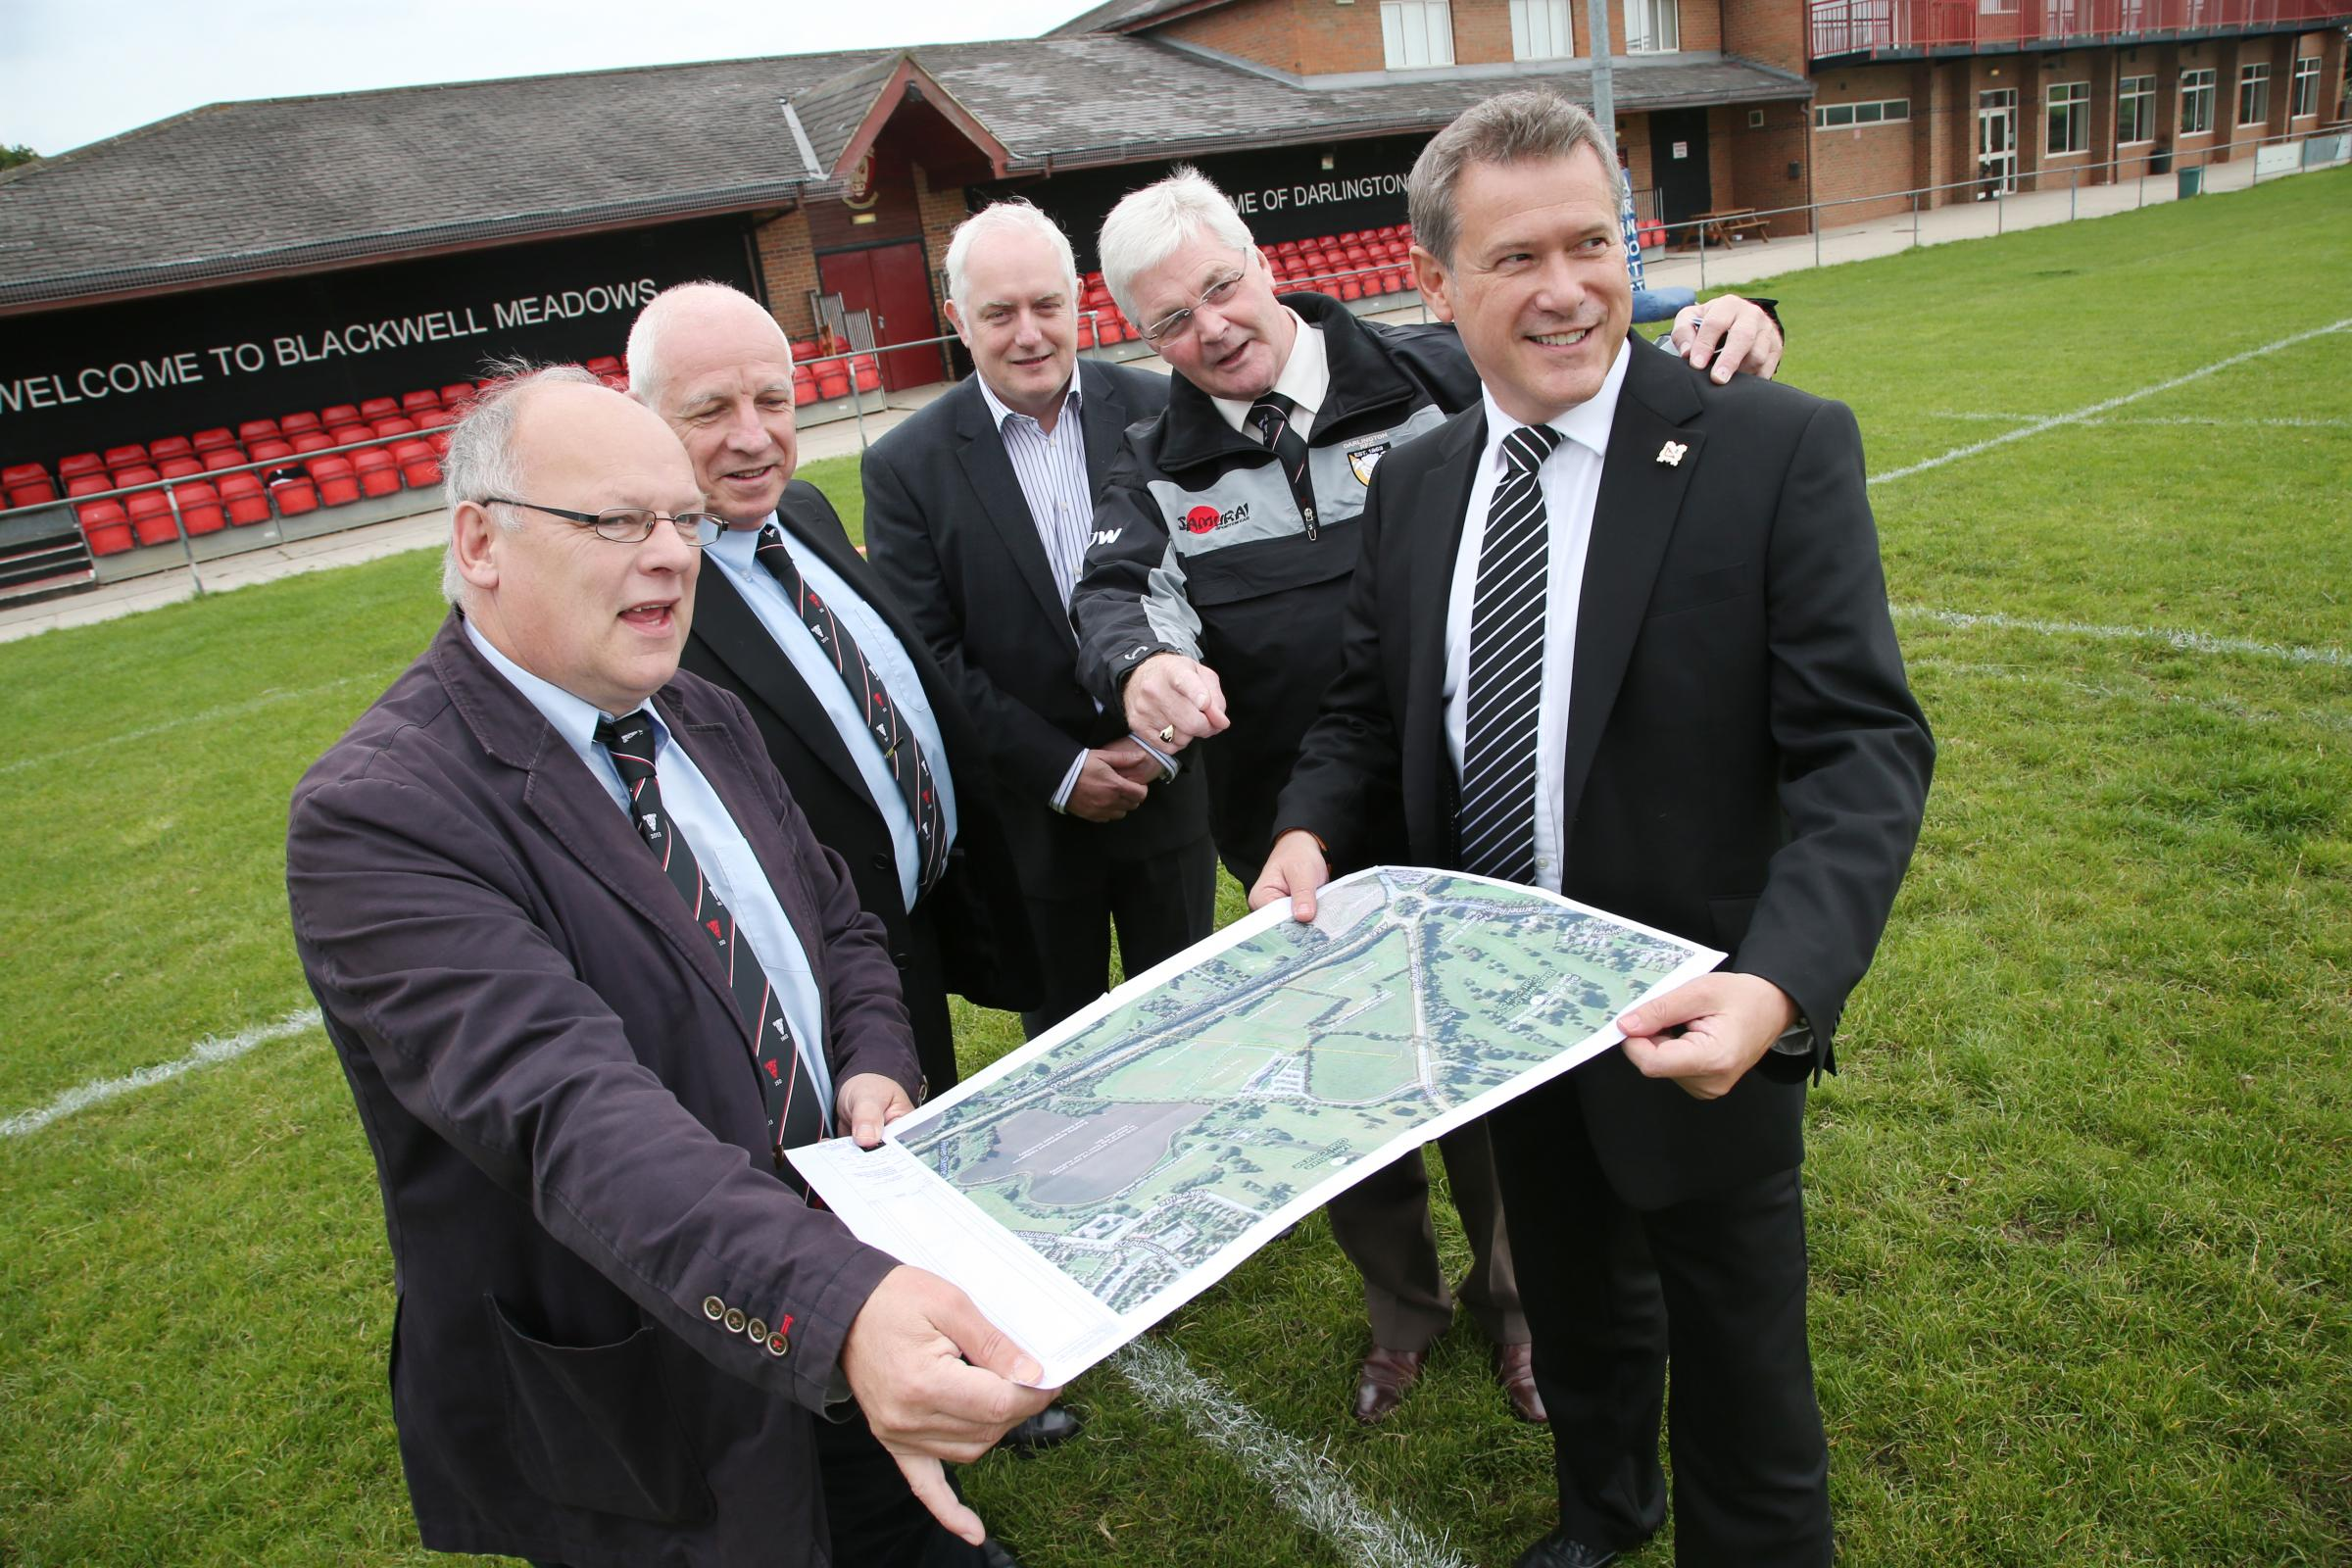 MAKING PLANS: From left Tony Stowe, from Darlington Rugby Club, Peter Griffin, director of facilities for rugby club, John Tempest, from Darlington CIC, Michael Wilkinson, chairman of the rugby club, and Martin Jesper, director of Darlington FC.